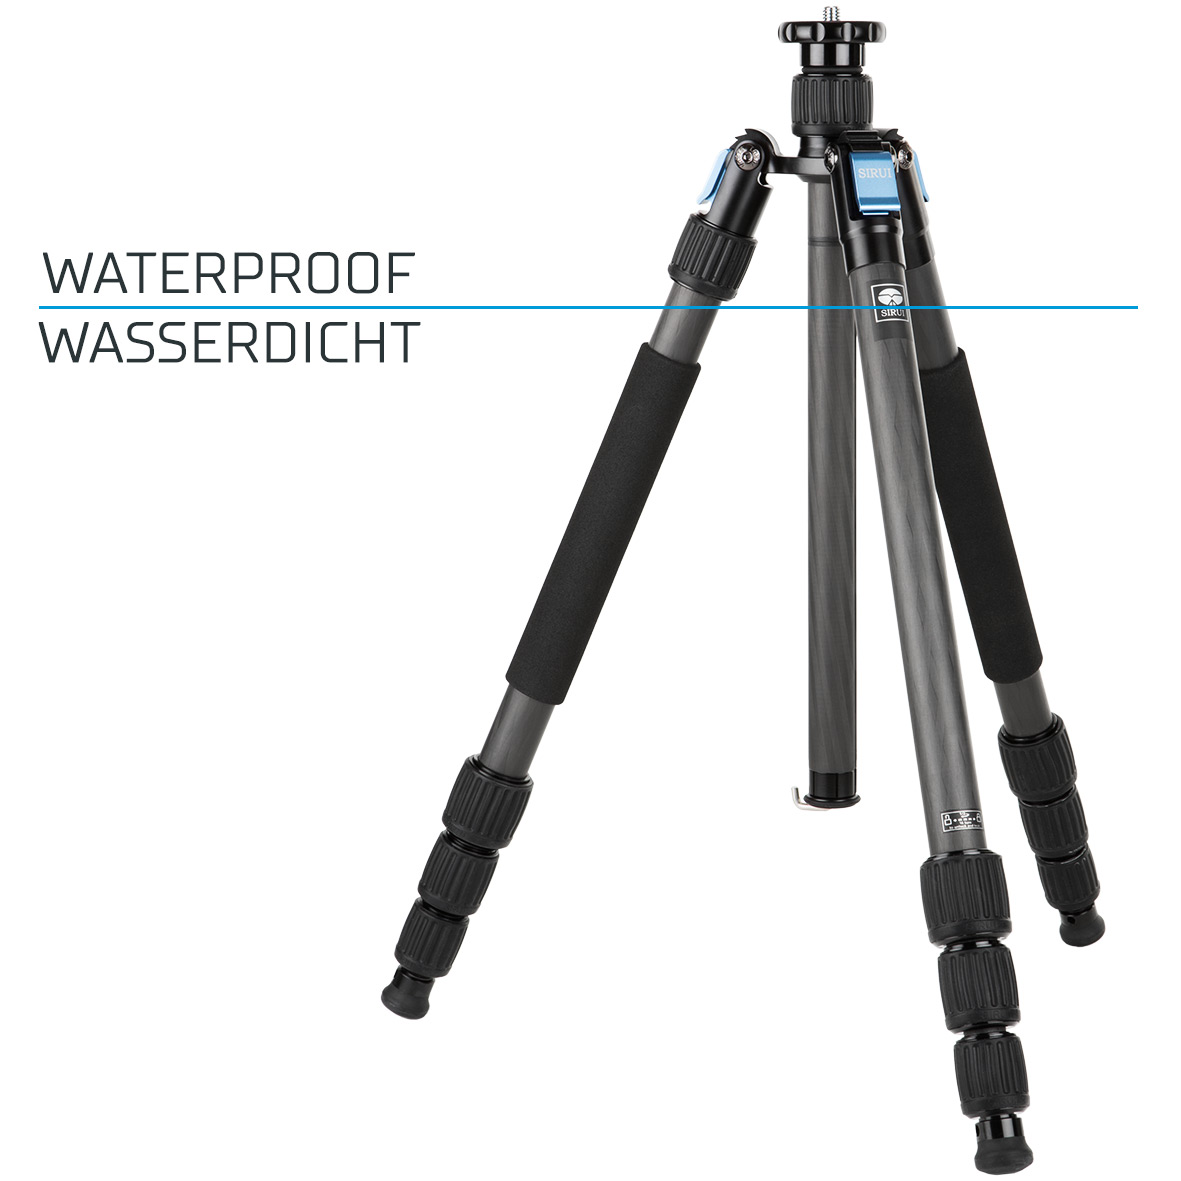 WATERPROOF / WASSERDICHT